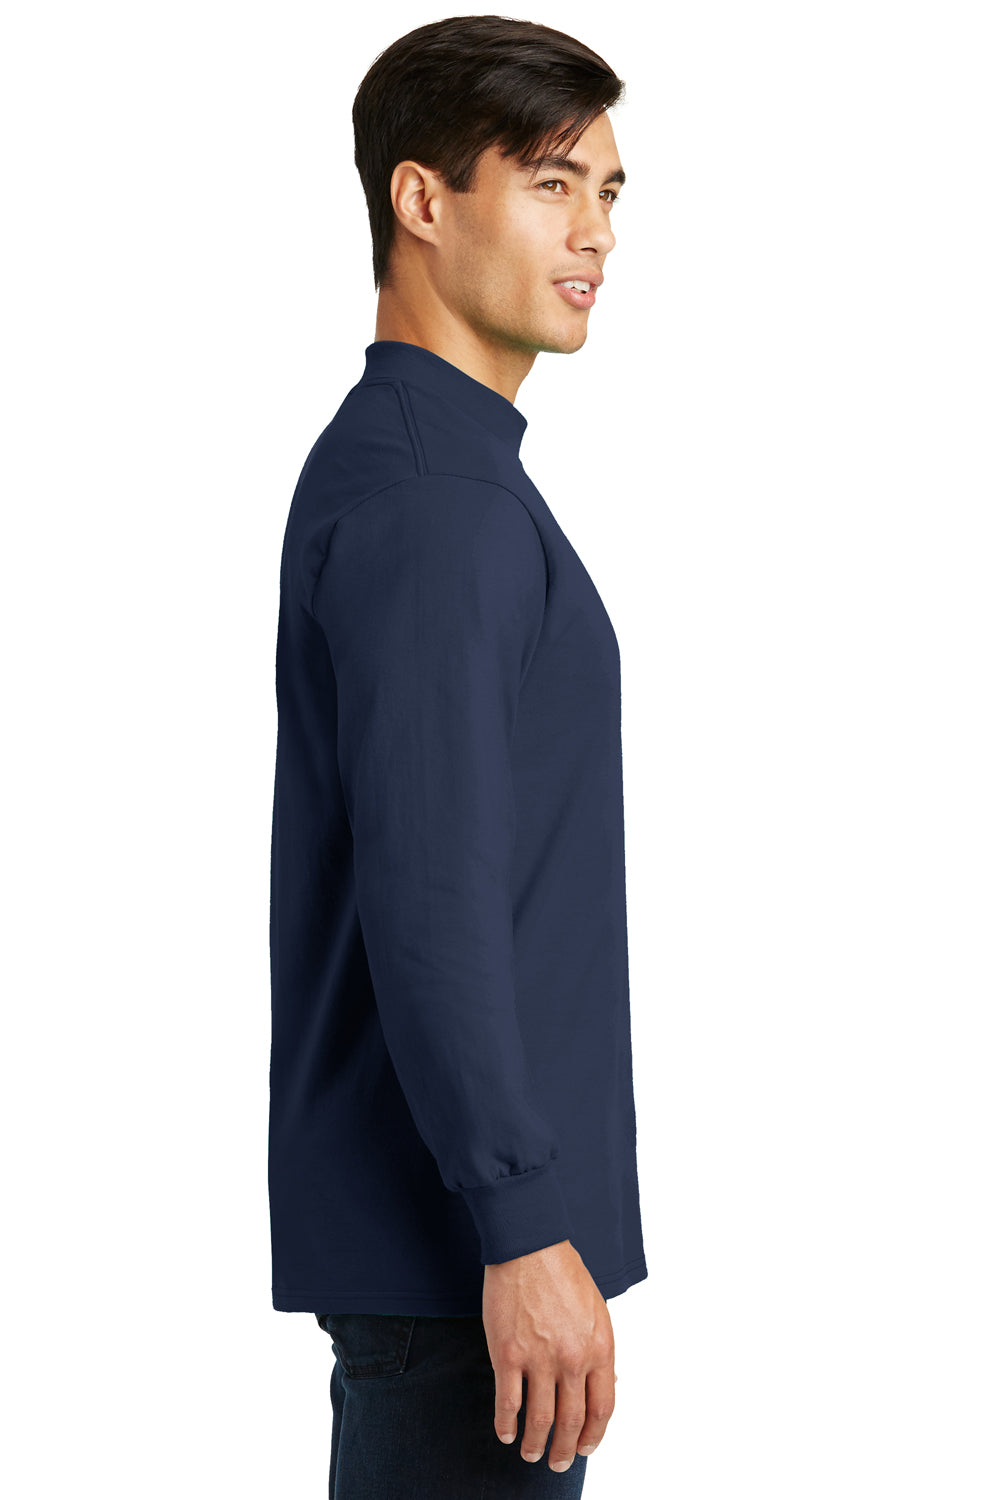 Port & Company PC61M Mens Essential Long Sleeve Mock Neck T-Shirt Navy Blue Side